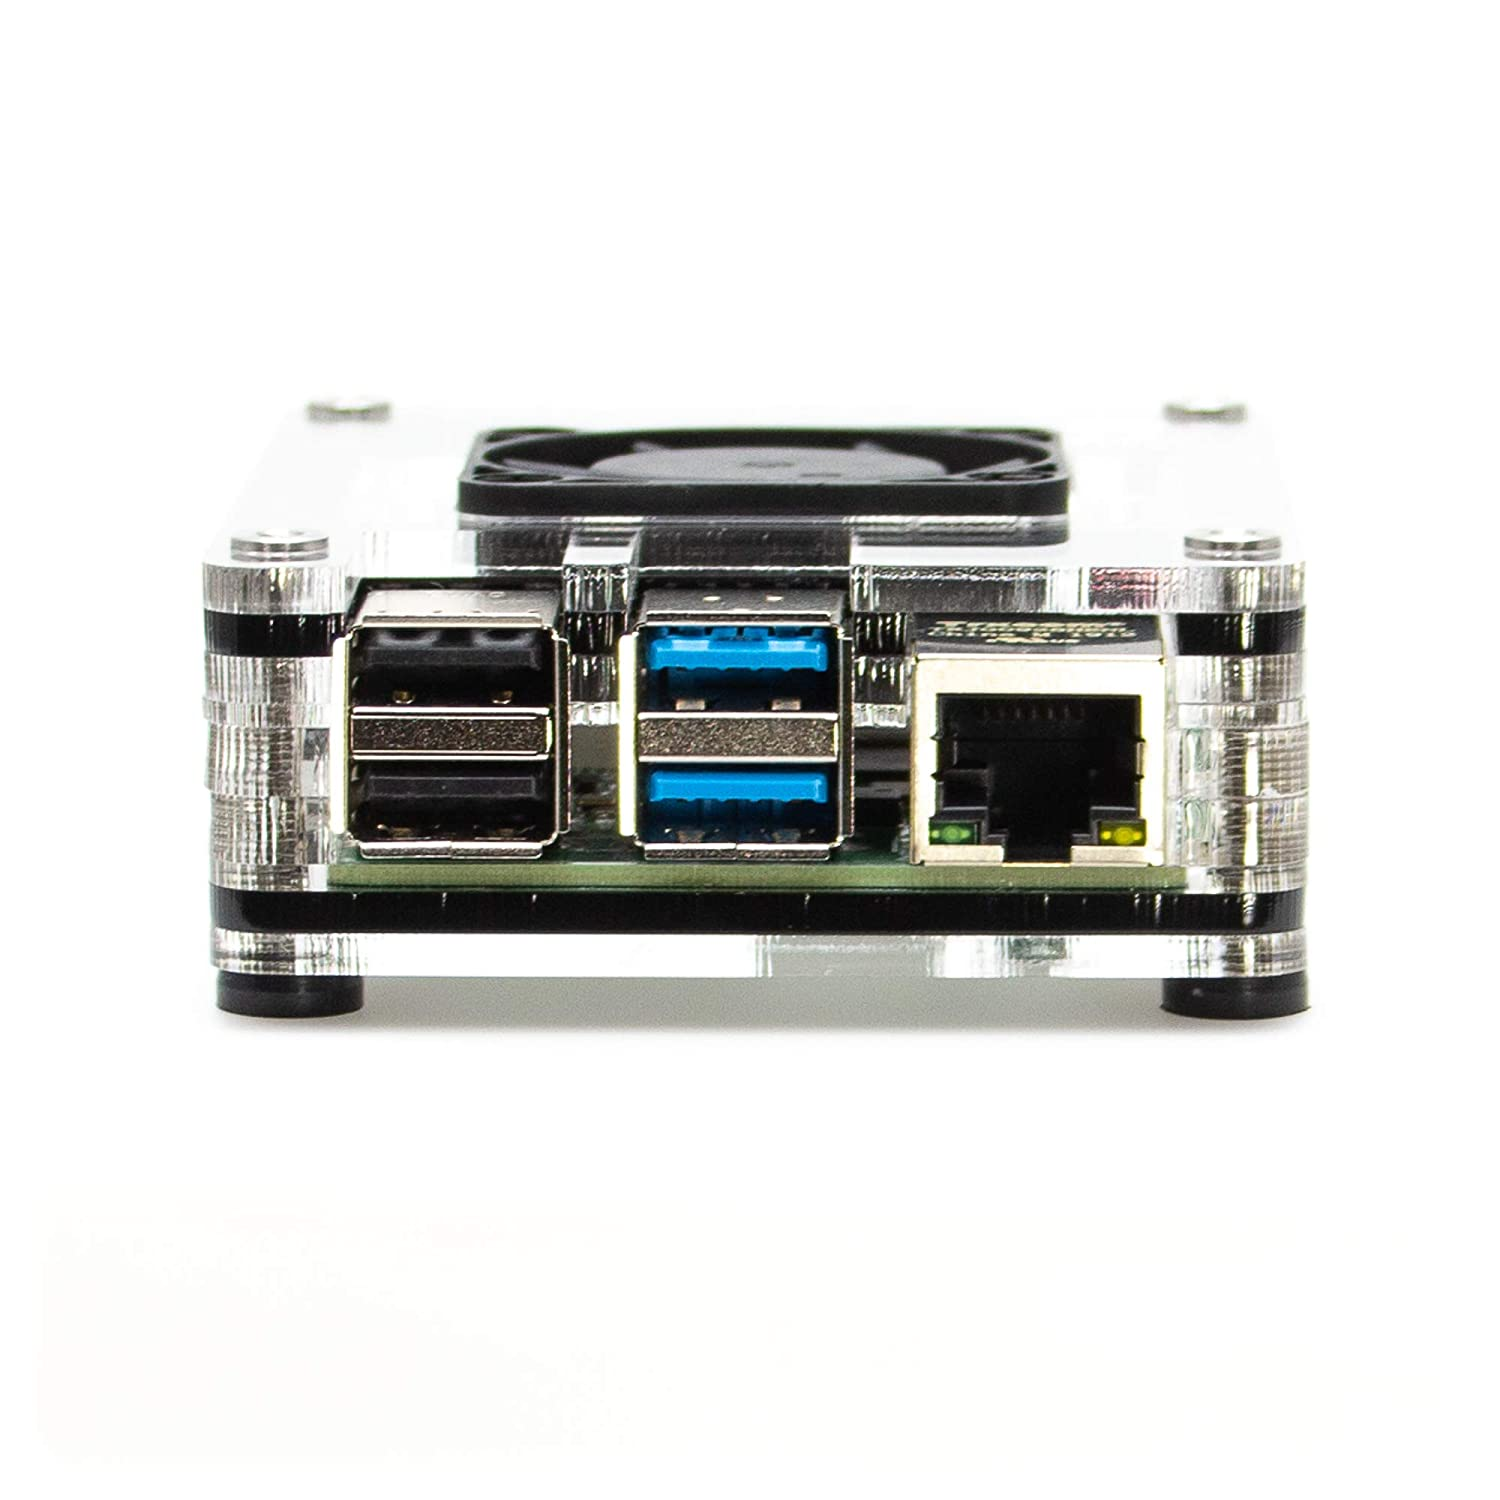 C4Labs - Zebra 4 Interior Fan Case for Raspberry Pi 4 B